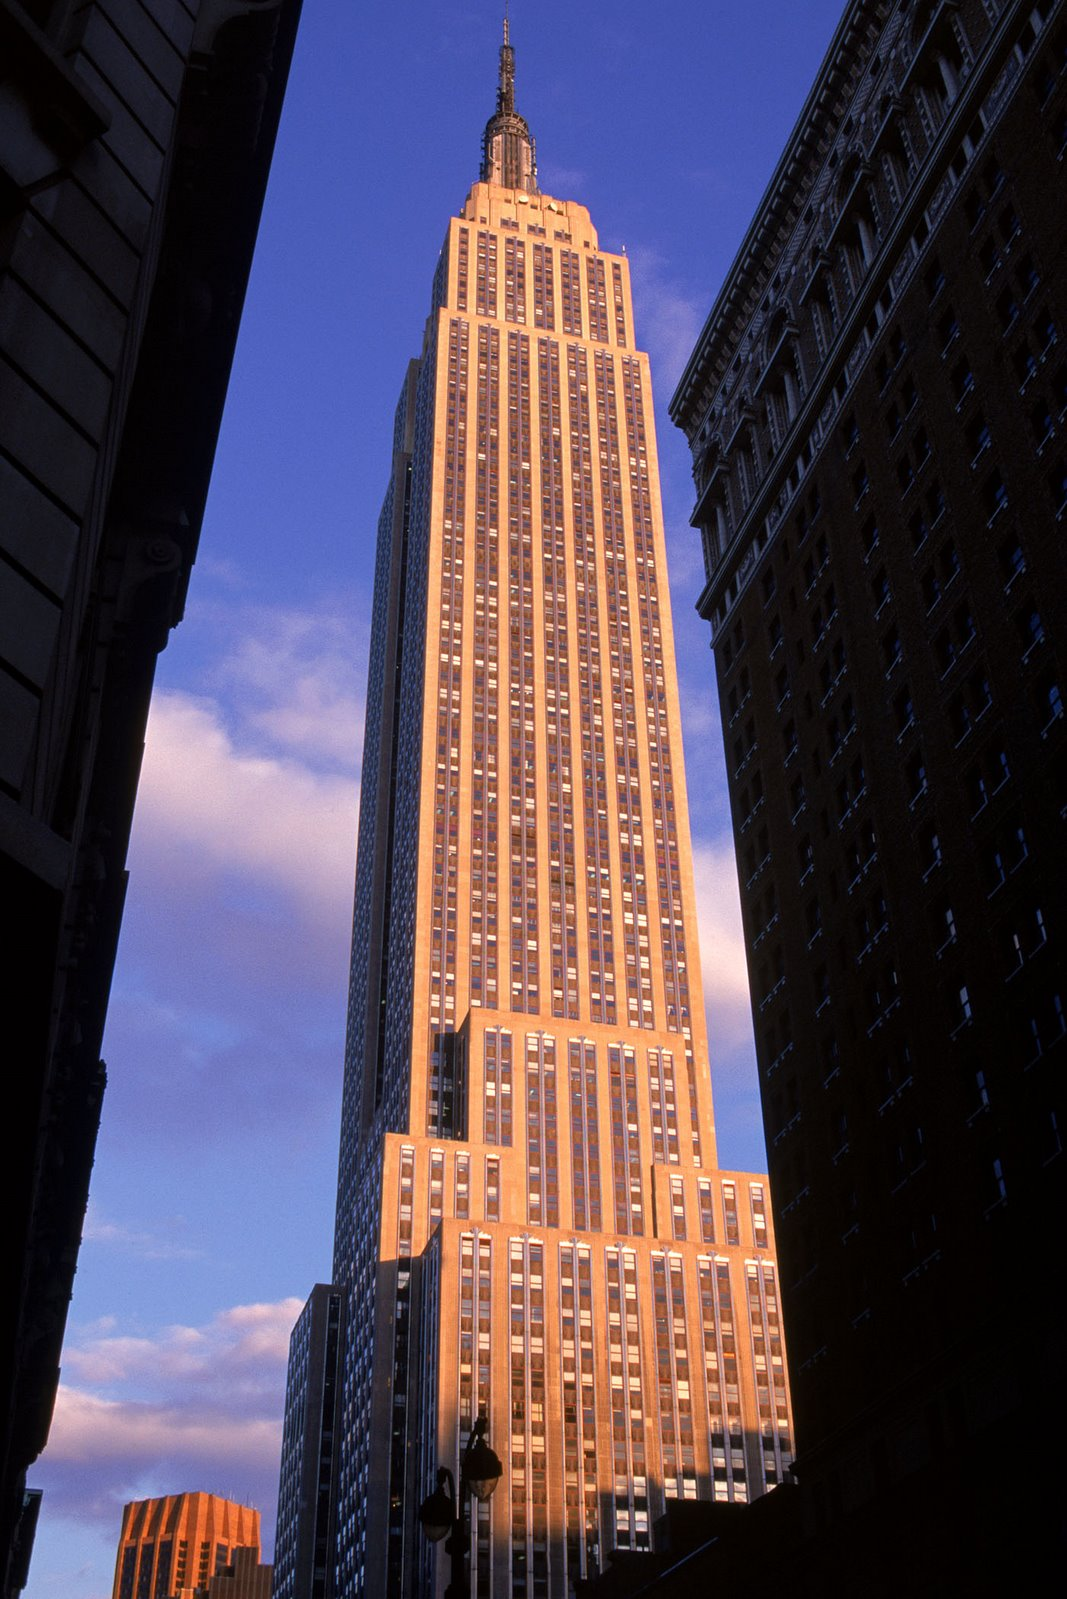 50 extraordinary photos of empire state building a new york treasure places boomsbeat. Black Bedroom Furniture Sets. Home Design Ideas